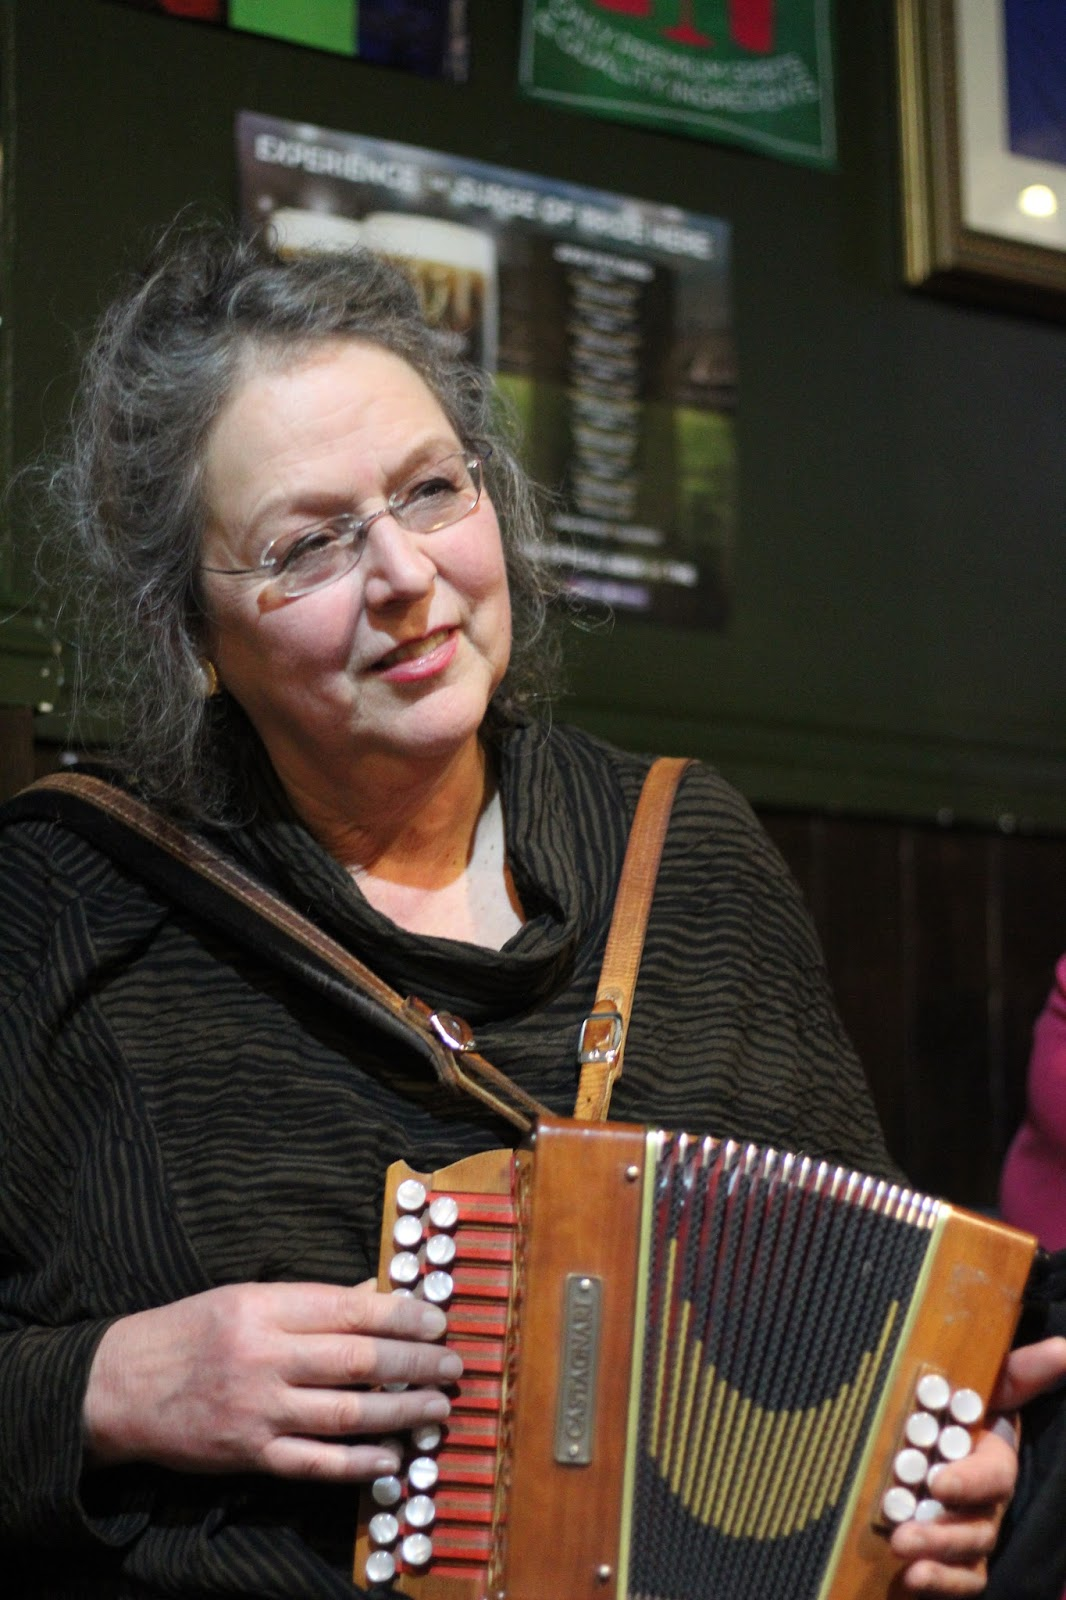 The Duffy's Session ⋆ The Extreme Housewife ⋆ Irish Folk Music